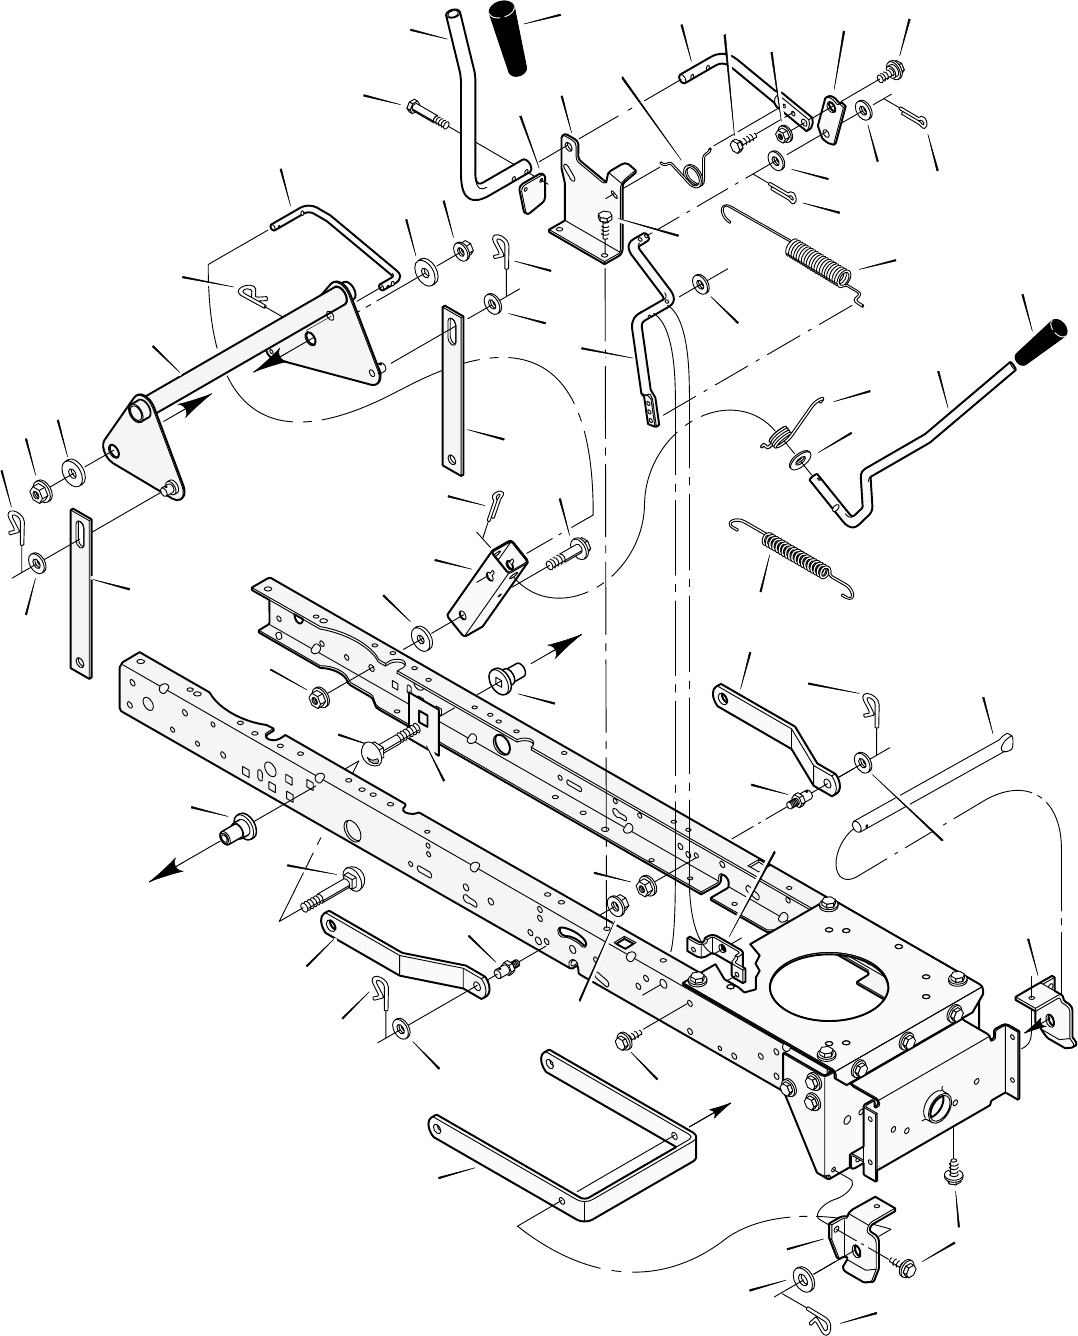 Page 42 of Murray Lawn Mower 405005x99A User Guide